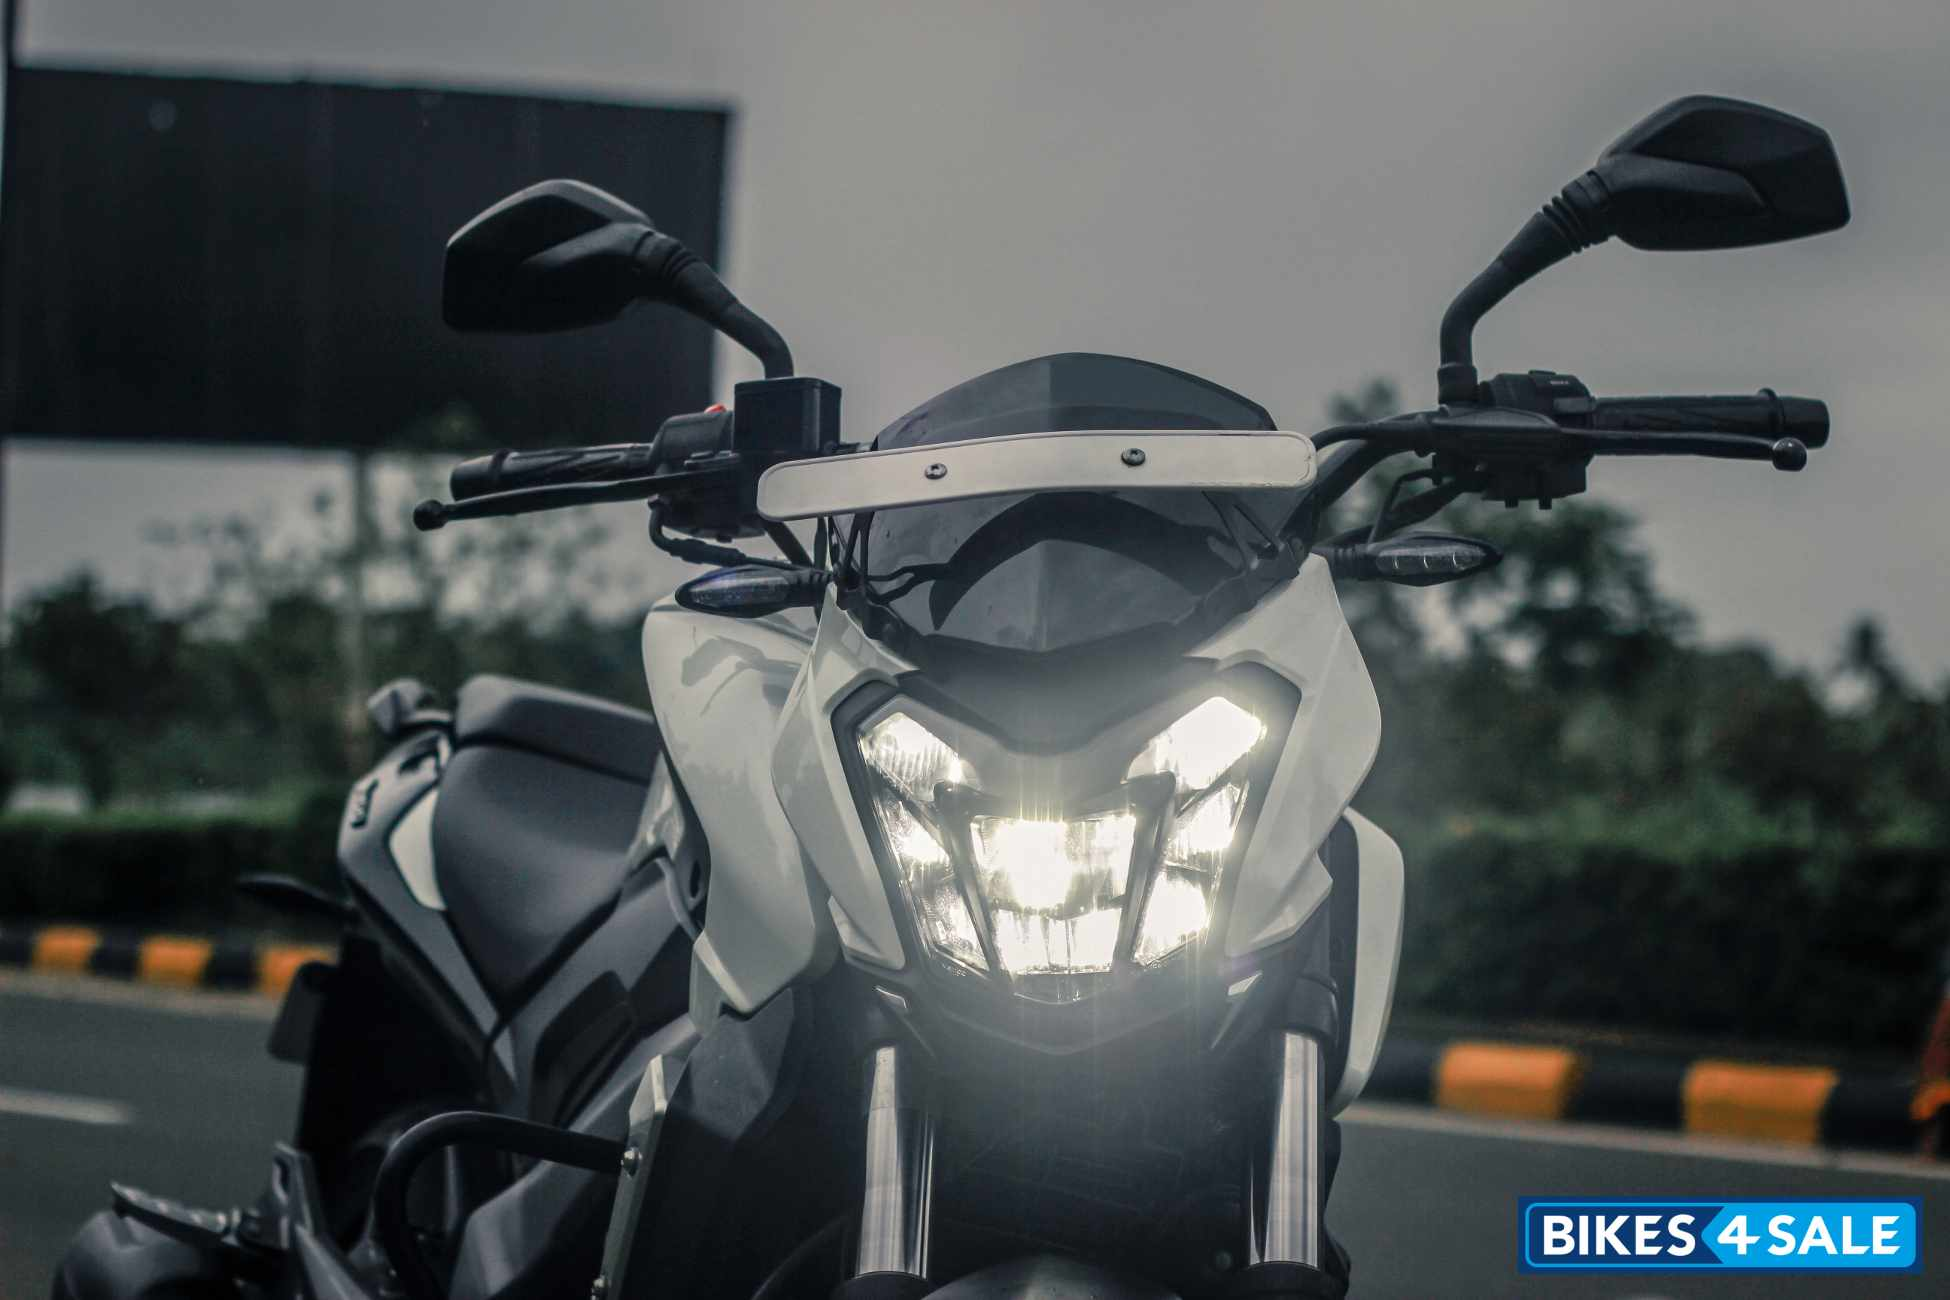 Bajaj Dominar 400 Fully LED headlight